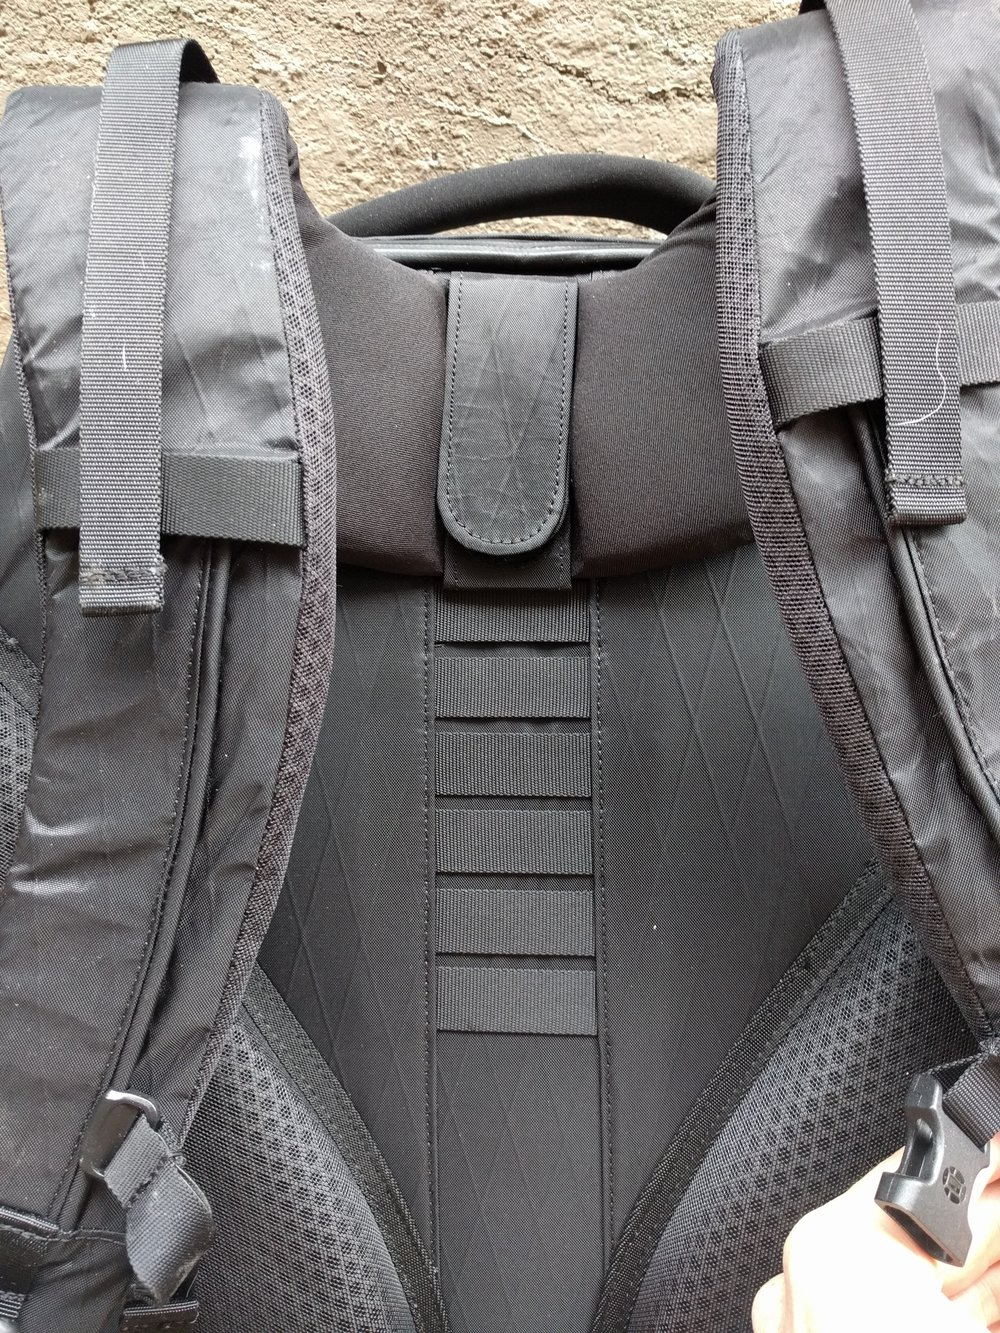 Each of those vertical pieces of webbing in the center are a potential set position for the shoulder straps. You undo that center piece of velcro and you can move them up or down.